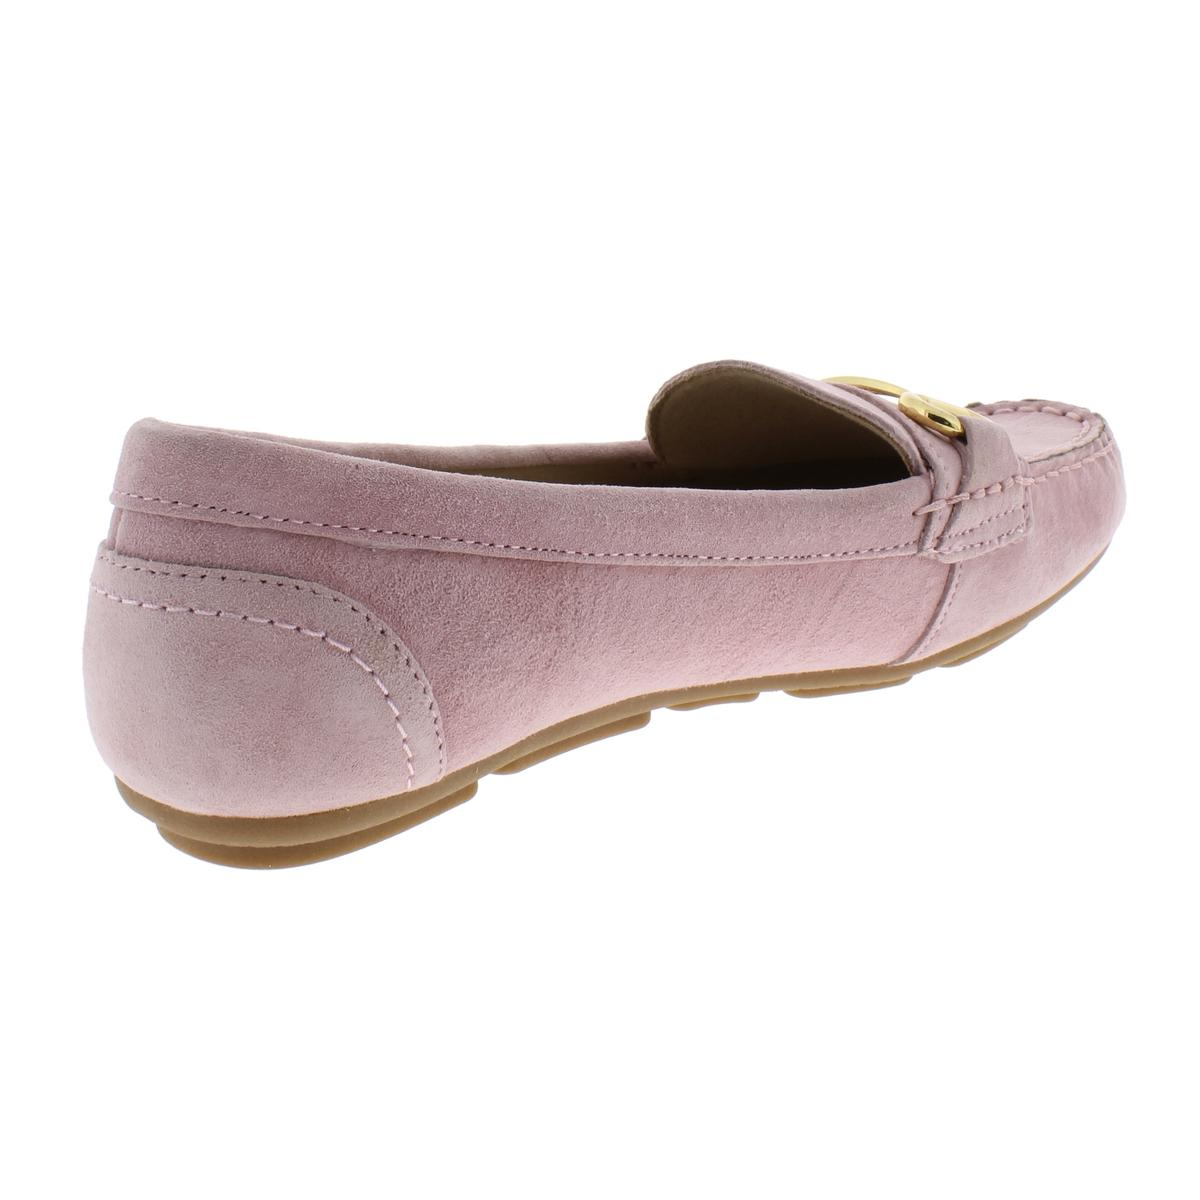 White-Mountain-Womens-Scotch-Padded-Insole-Dress-Moccasins-Shoes-BHFO-3287 thumbnail 6